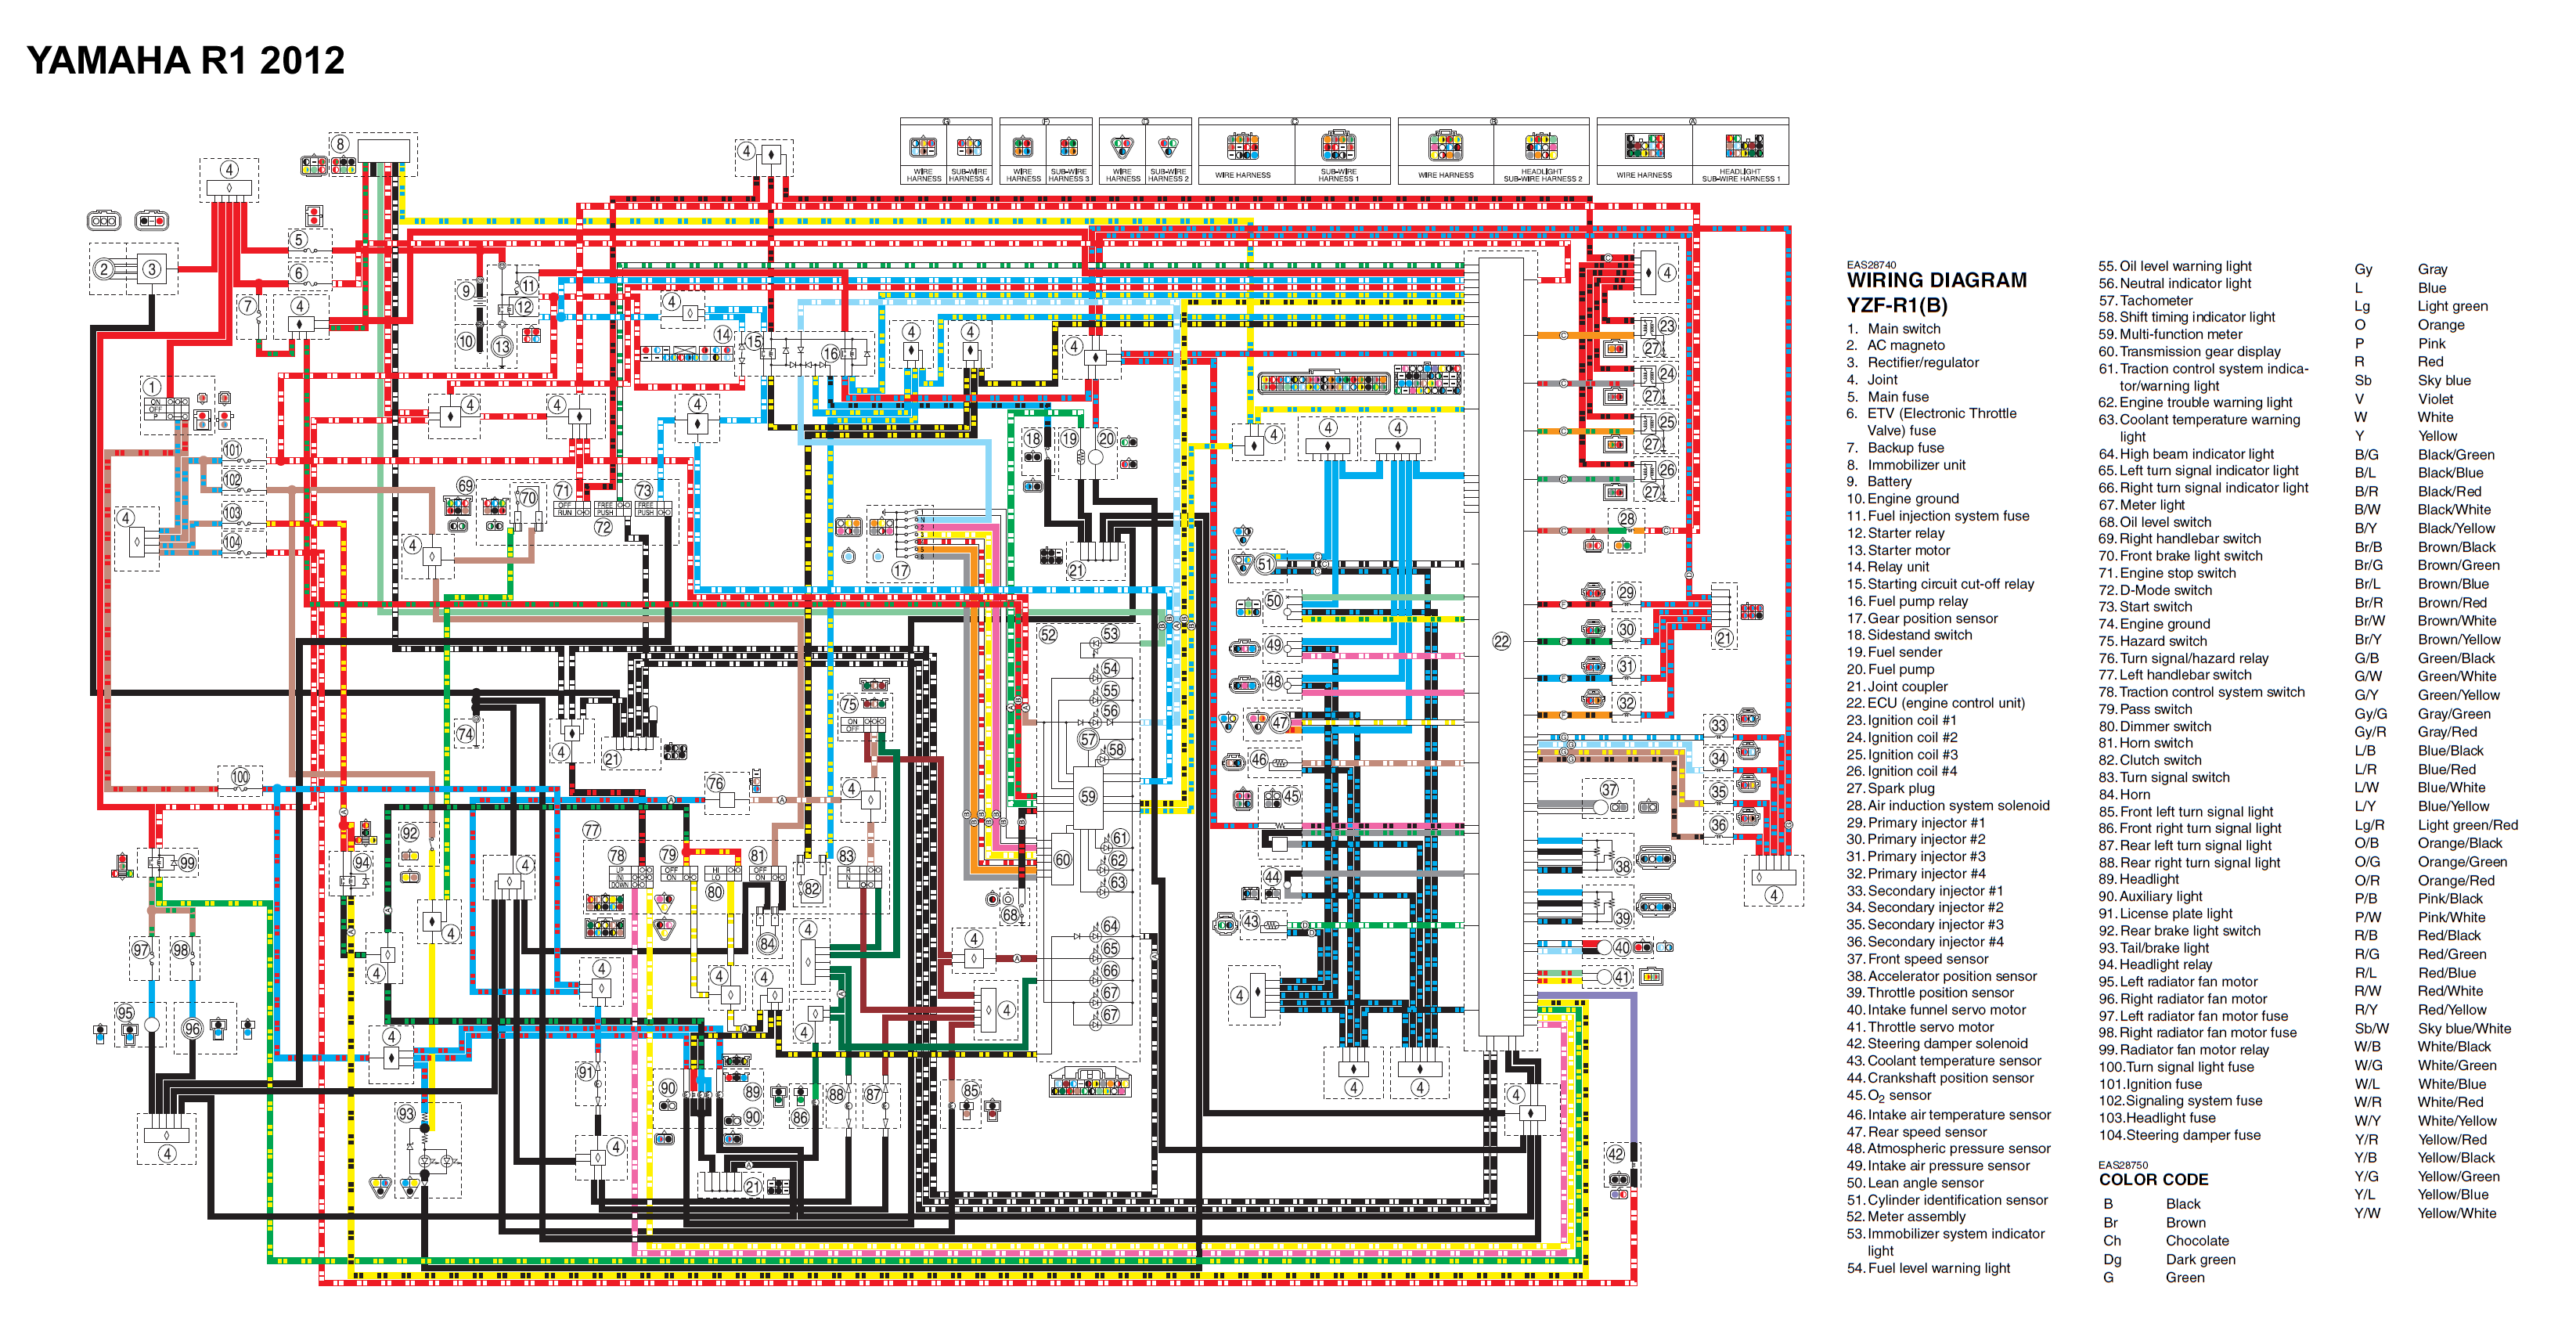 kawasaki r1 wiring diagram wiring diagrams 2009 yzf r1 wiring diagram #7